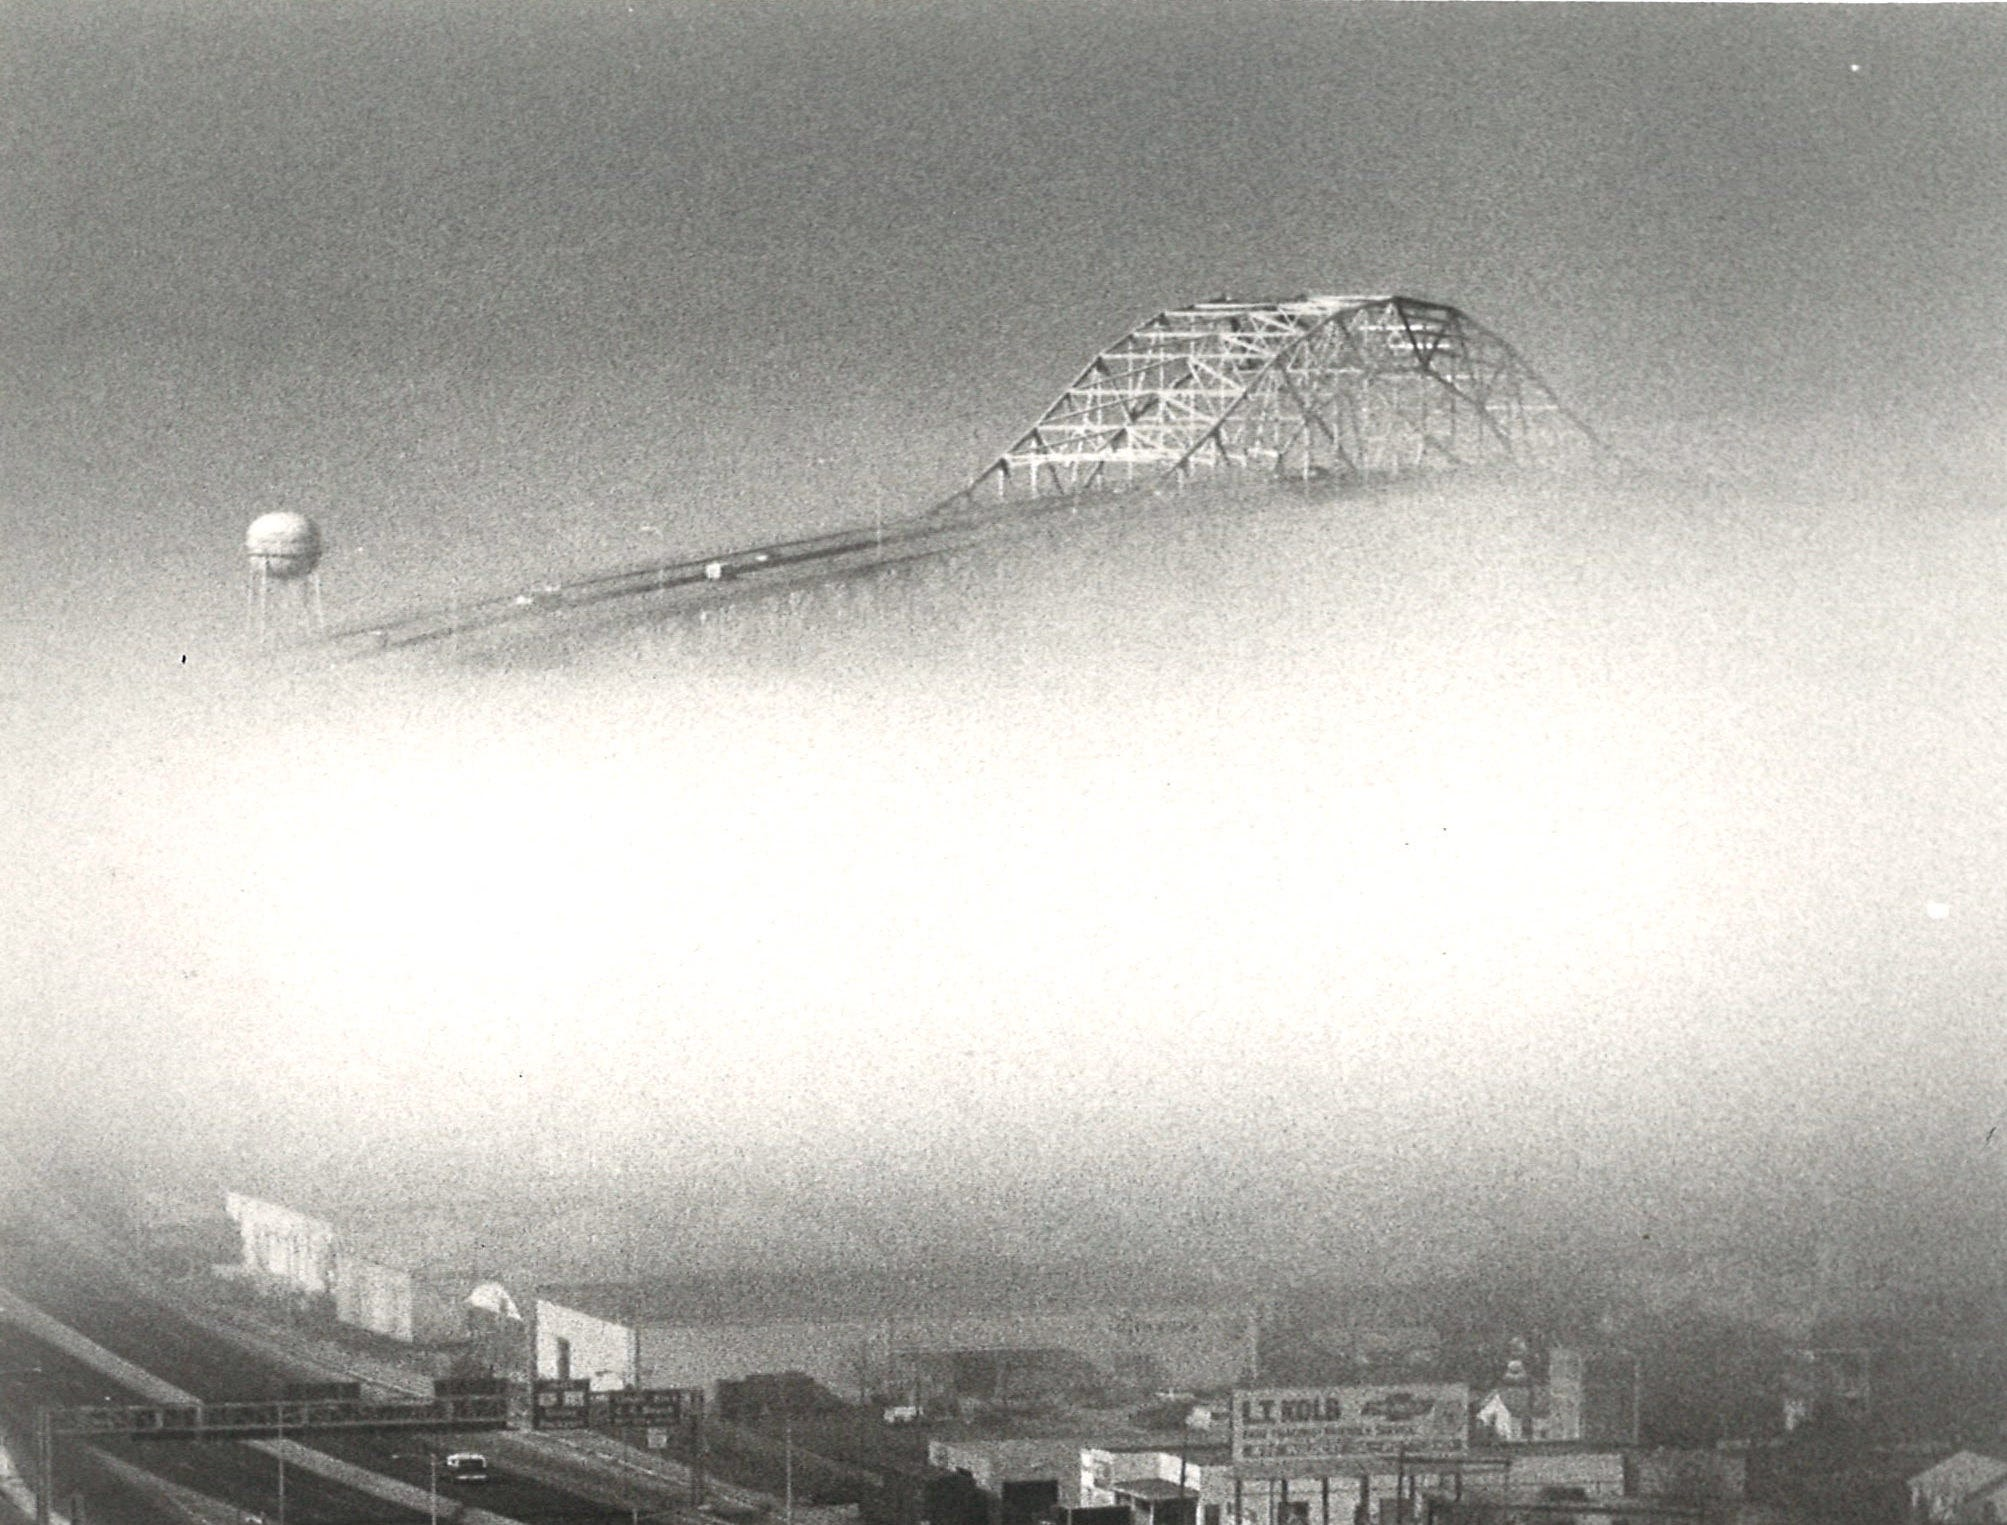 The Harbor Bridge in Corpus Christi hides behind the fog in downtown in February 1980.